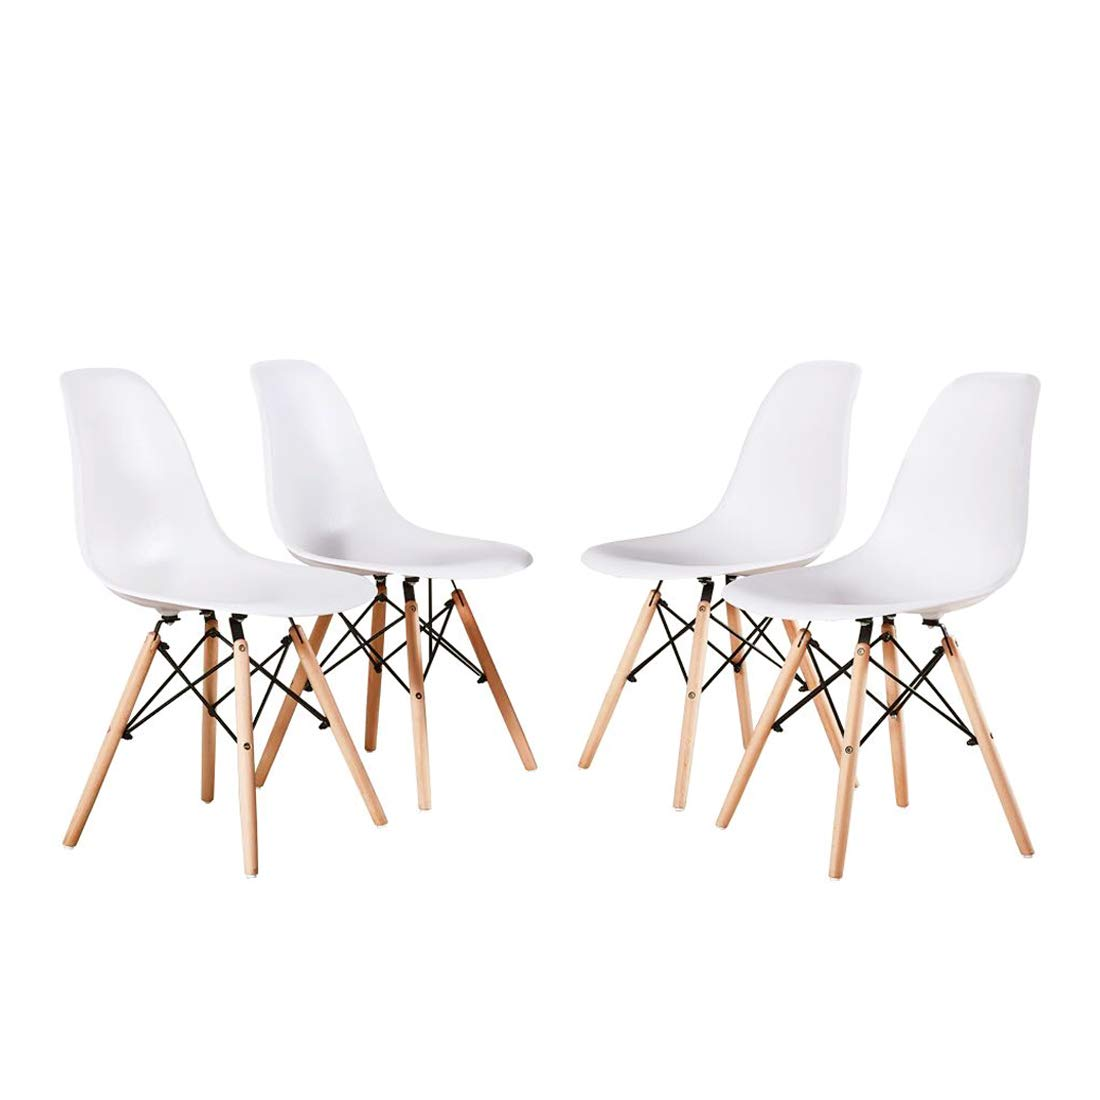 Stupendous Alovhad Dining Chairs Set Of 4 Modern Kitchen Furniture Side White Chairs Mid Century Dinning Room Home Furniture Plastic Wooden Legs Waiting Room Ibusinesslaw Wood Chair Design Ideas Ibusinesslaworg